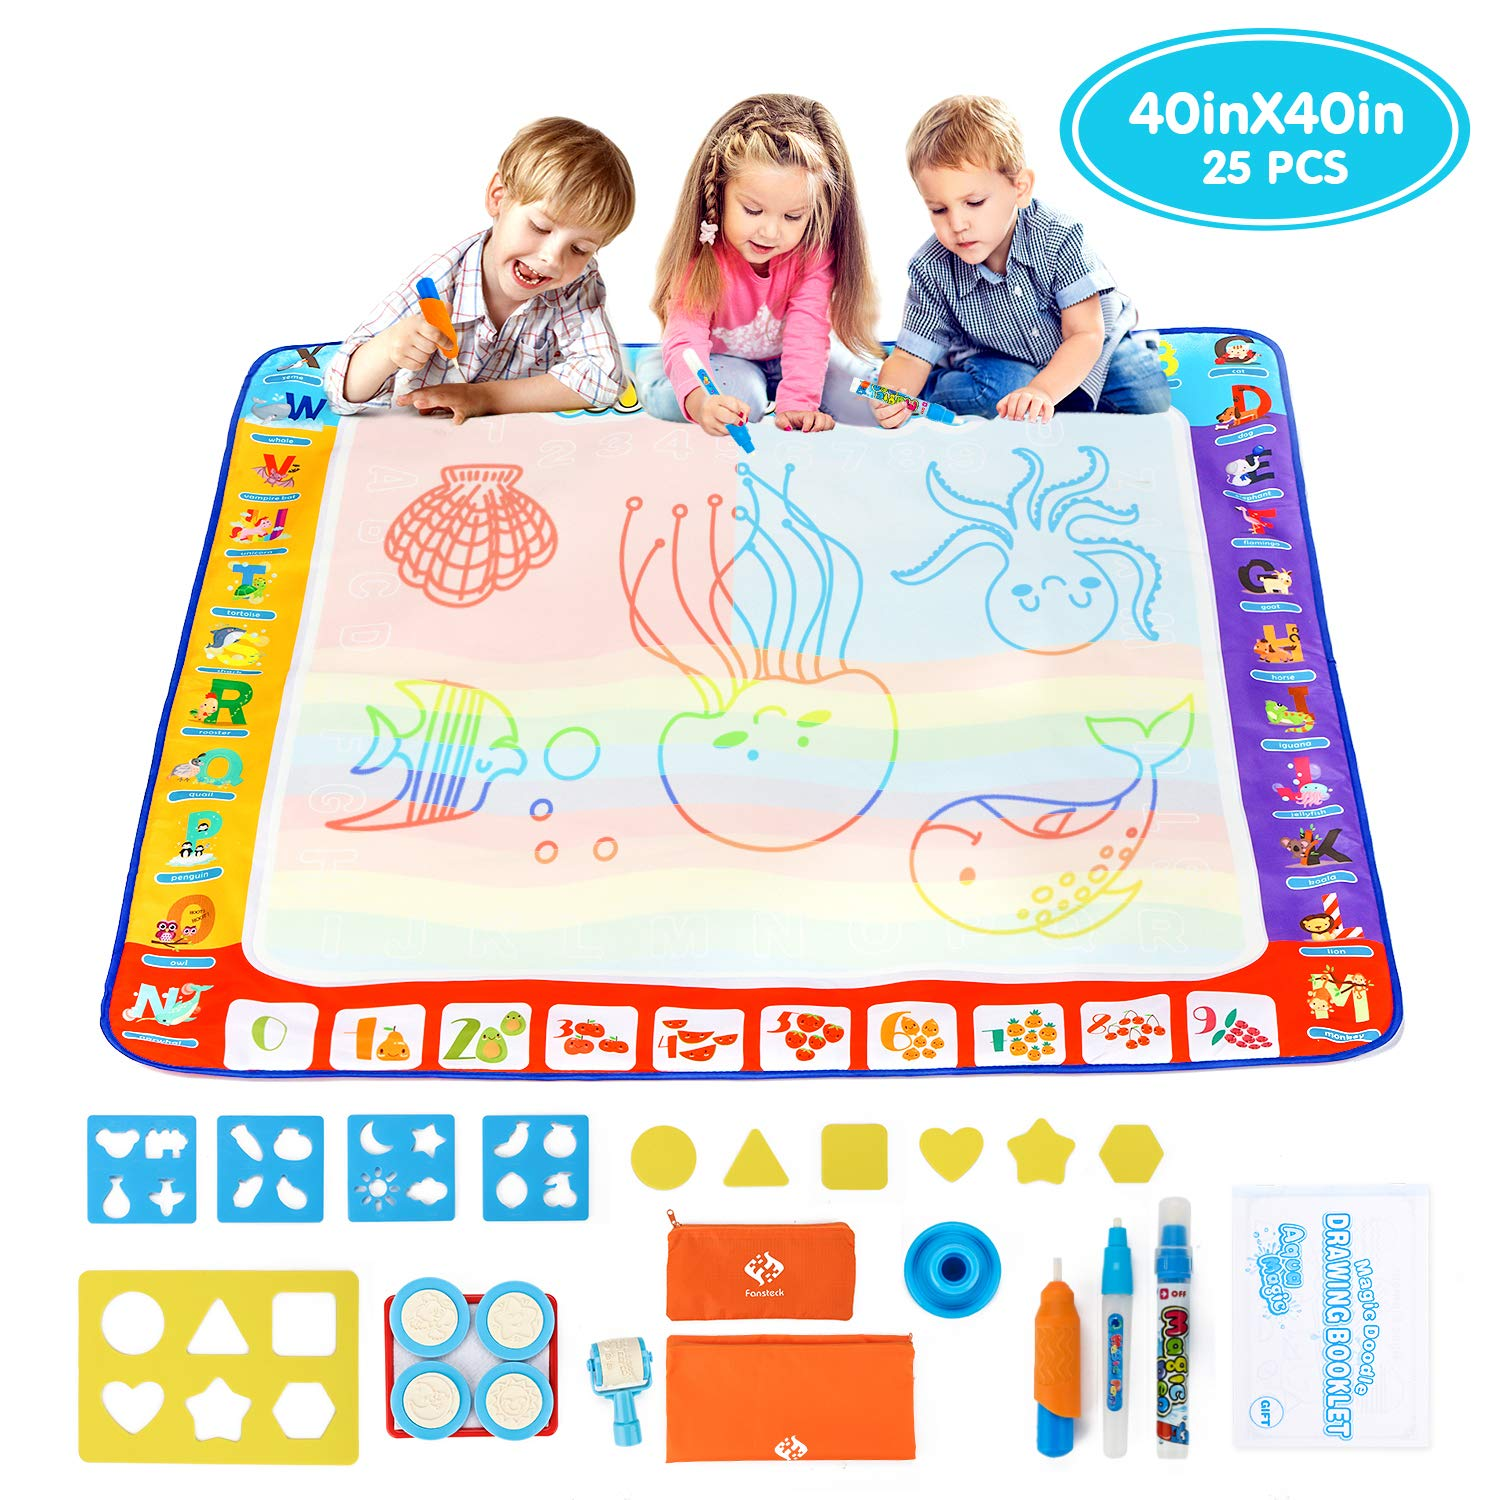 Fansteck Water Drawing Mat 40x40 inch, Large Water Doodle Mat with Storage Bag, Aqua Magic Doodle Mat with 24 Accessories, Educational Toys and Idea Gifts for Boys, Girls Age of 3 4 5 6 7 8